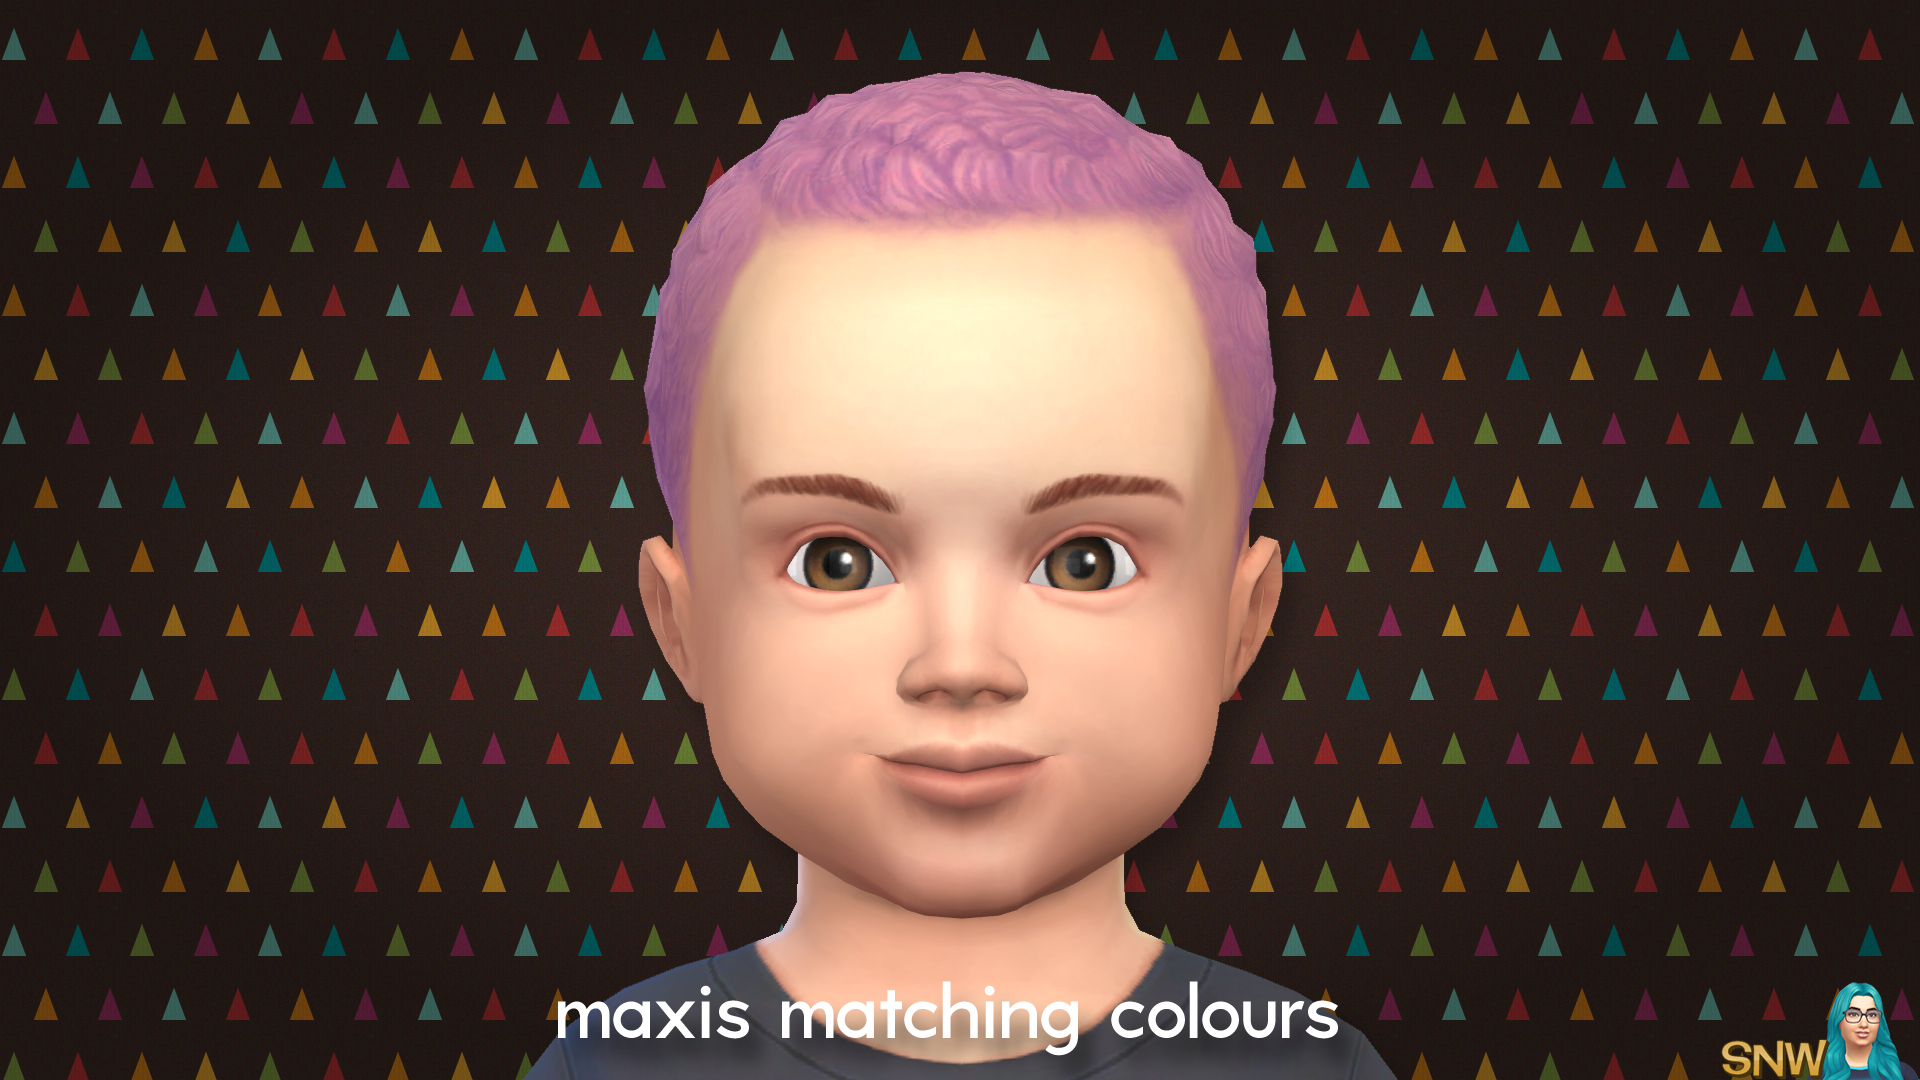 Maxis Matching Curls Short Hairdo for Toddlers